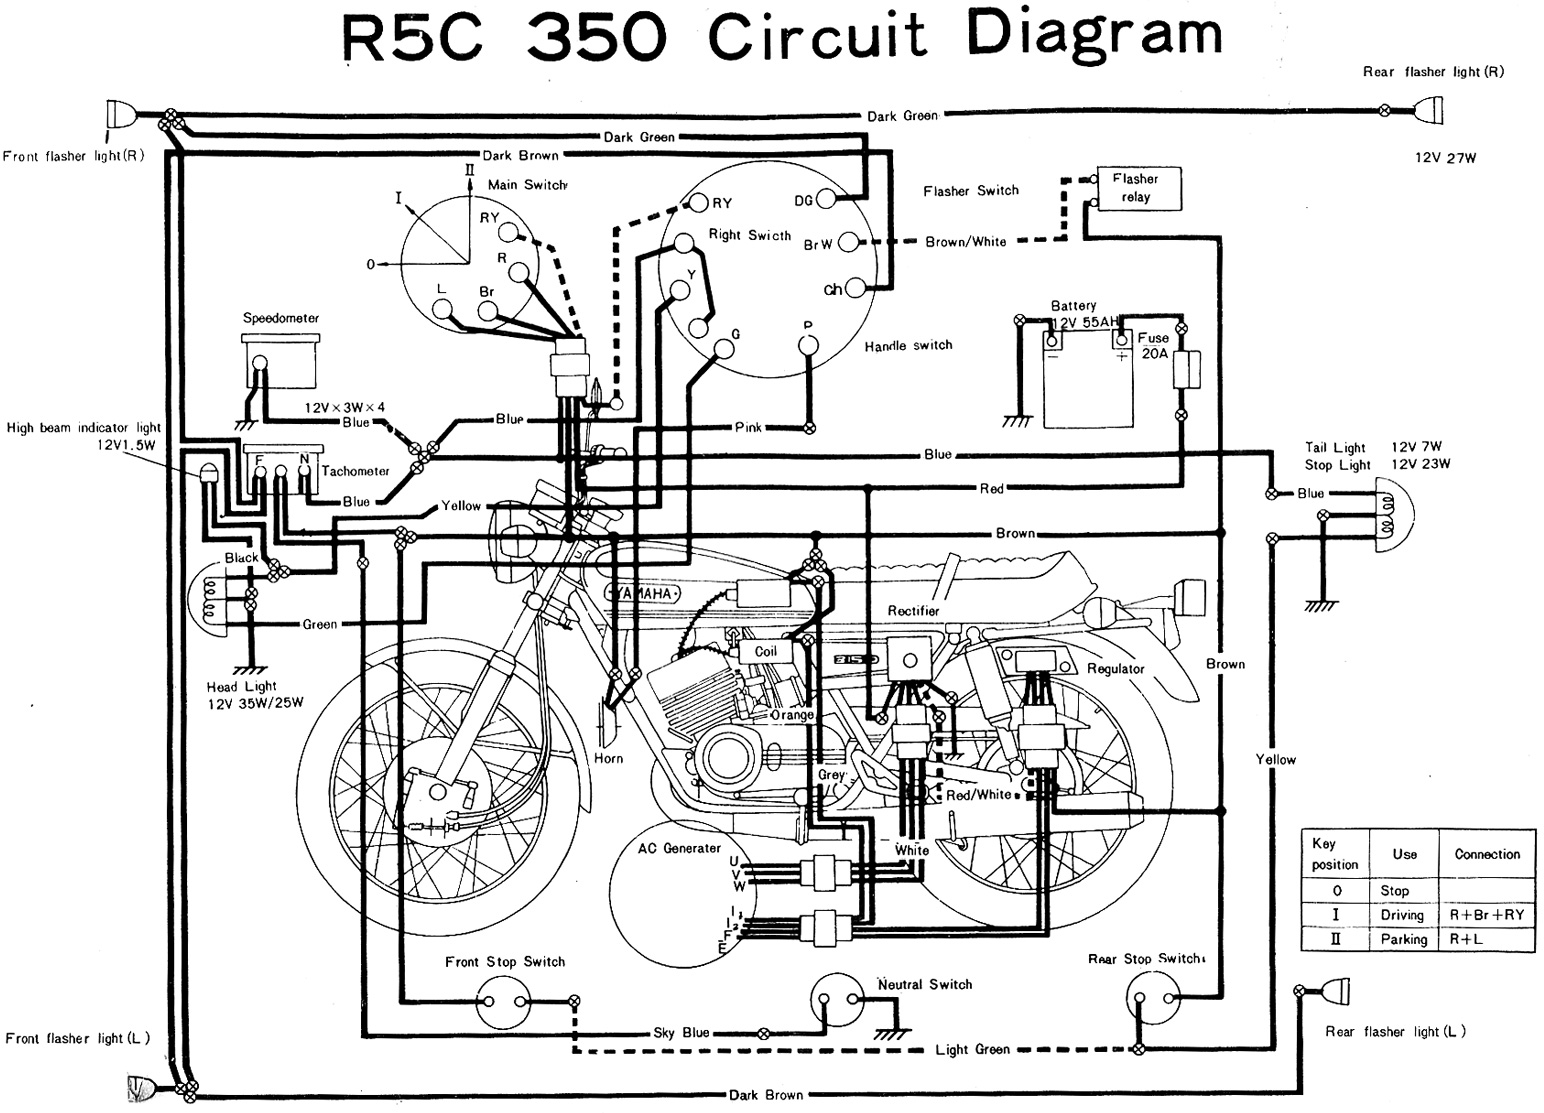 Yamaha RD350 R5C Wiring Diagram yamaha rd350 r5c wiring diagram evan fell motorcycle worksevan electrical wiring schematic at fashall.co